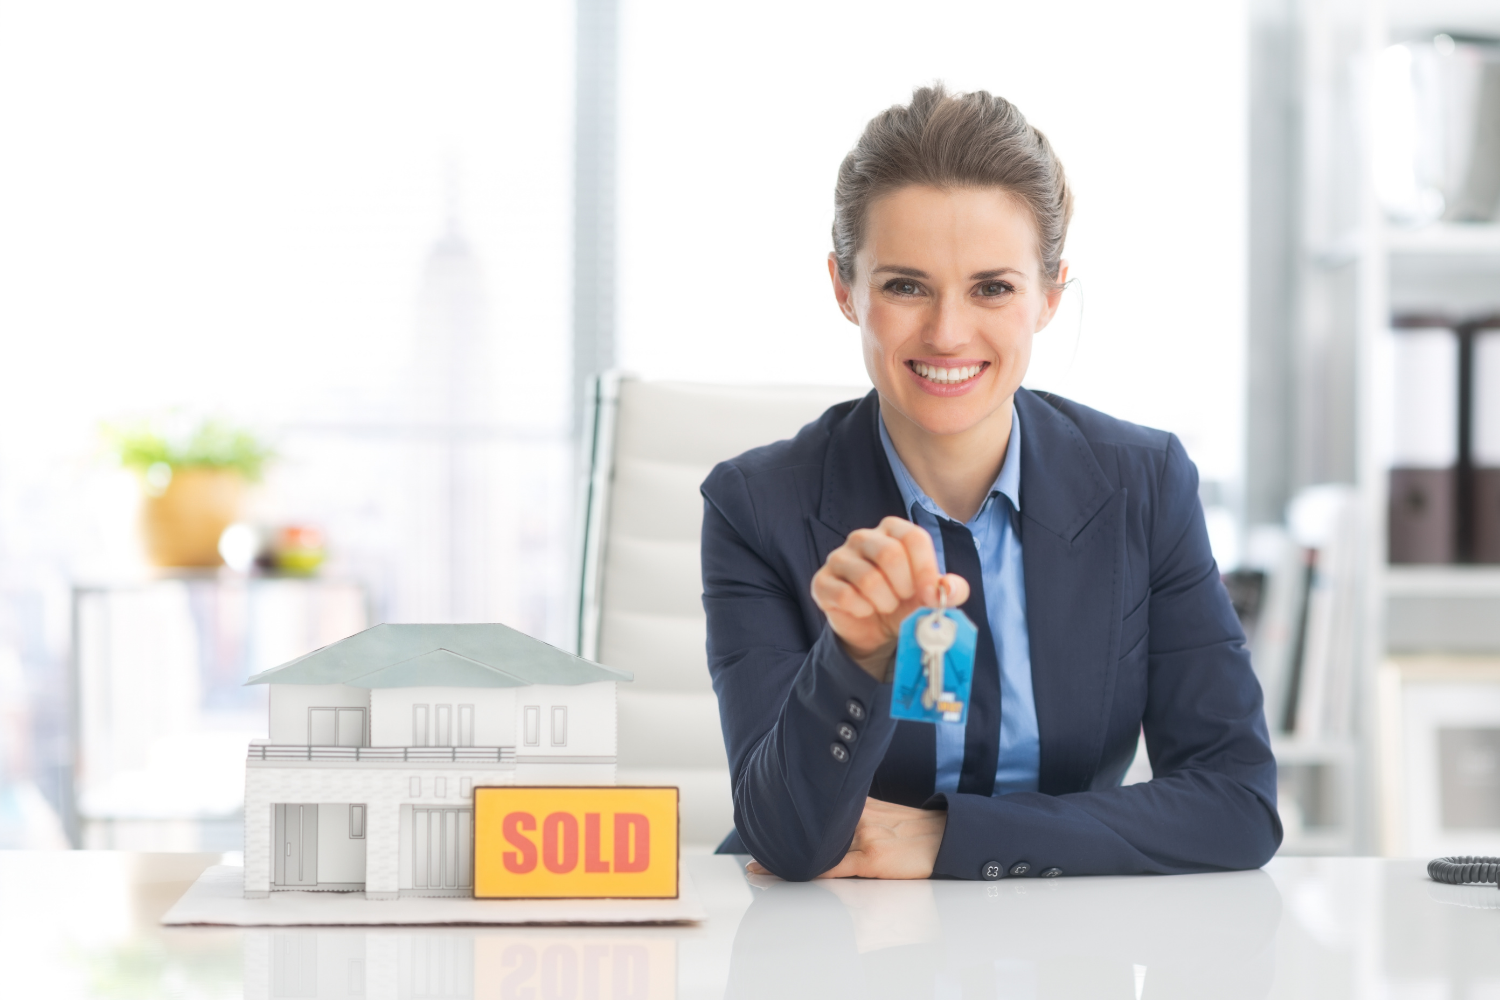 Realtor happy with the results of RealDigiAds as she increased her leads and sales